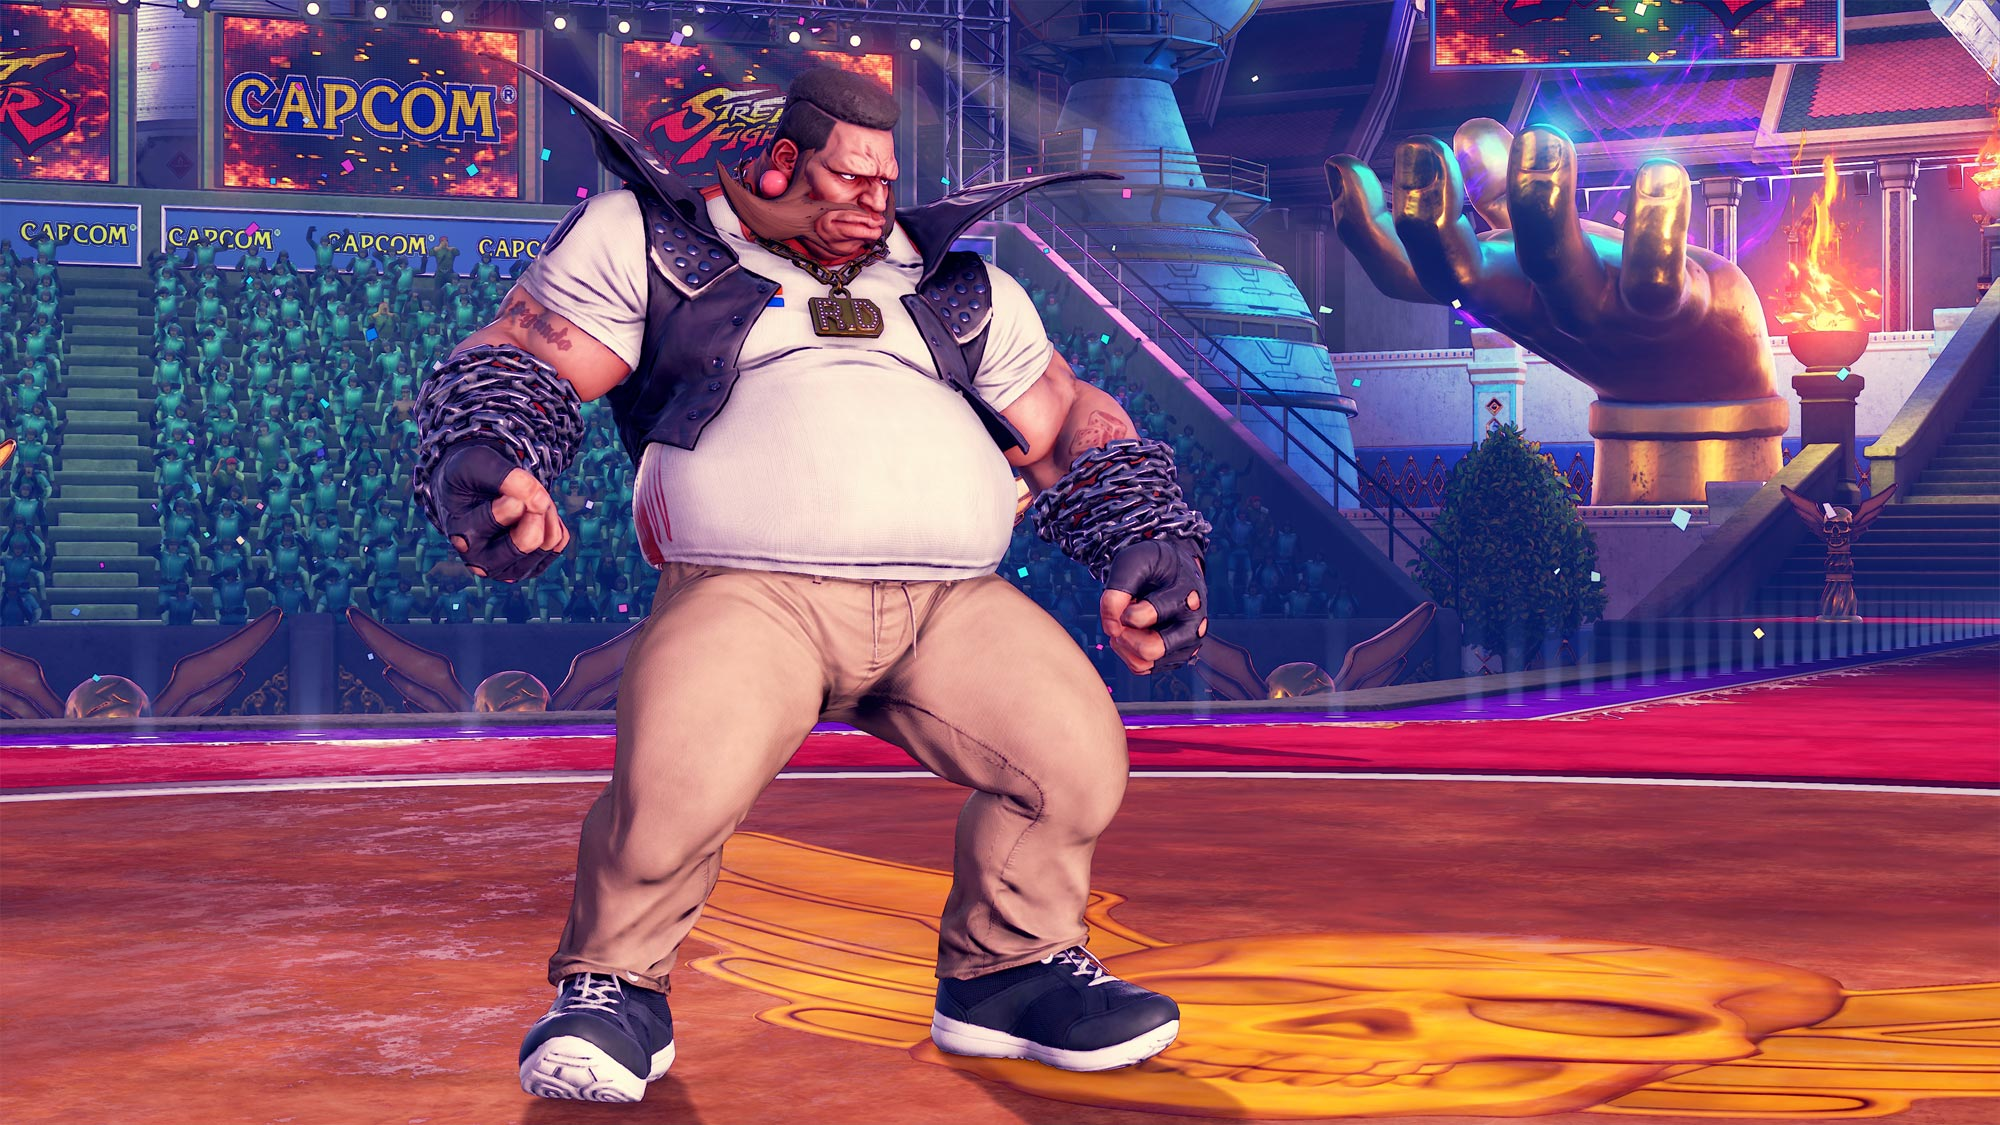 MenaRD's Street Fighter 5 Capcom Cup Champion's Choice Birdie costume 3 out of 9 image gallery